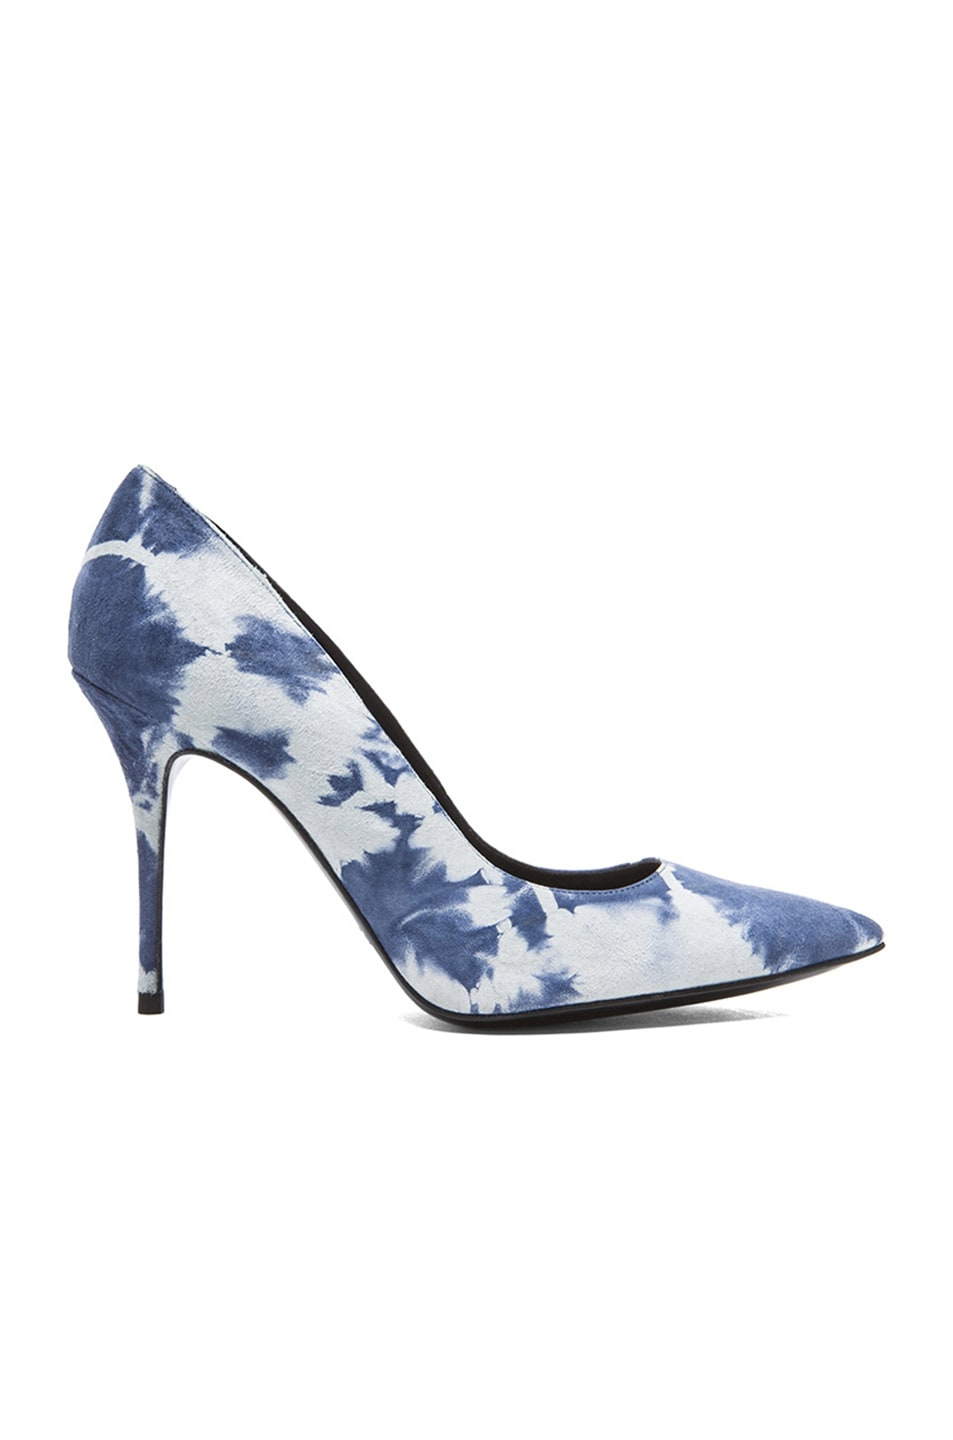 Image 1 of elysewalker los angeles Sable Tie Dye Satik Suede Pumps in Denim & White